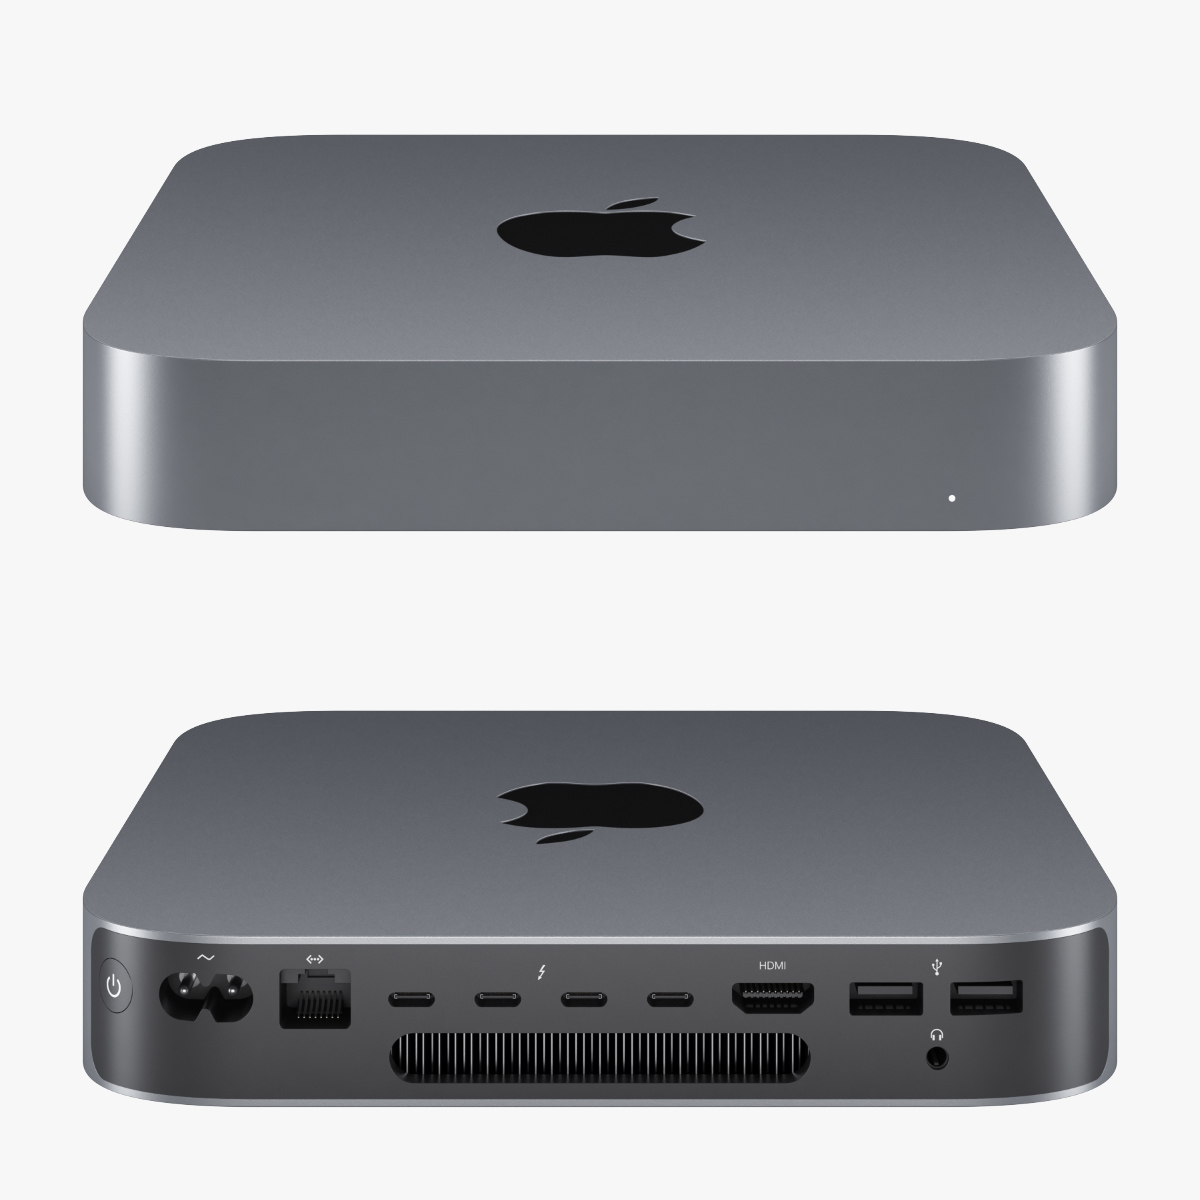 Mac Mini (2018) 3.2ghz i7/32gb/1TB/10gb Ethernet